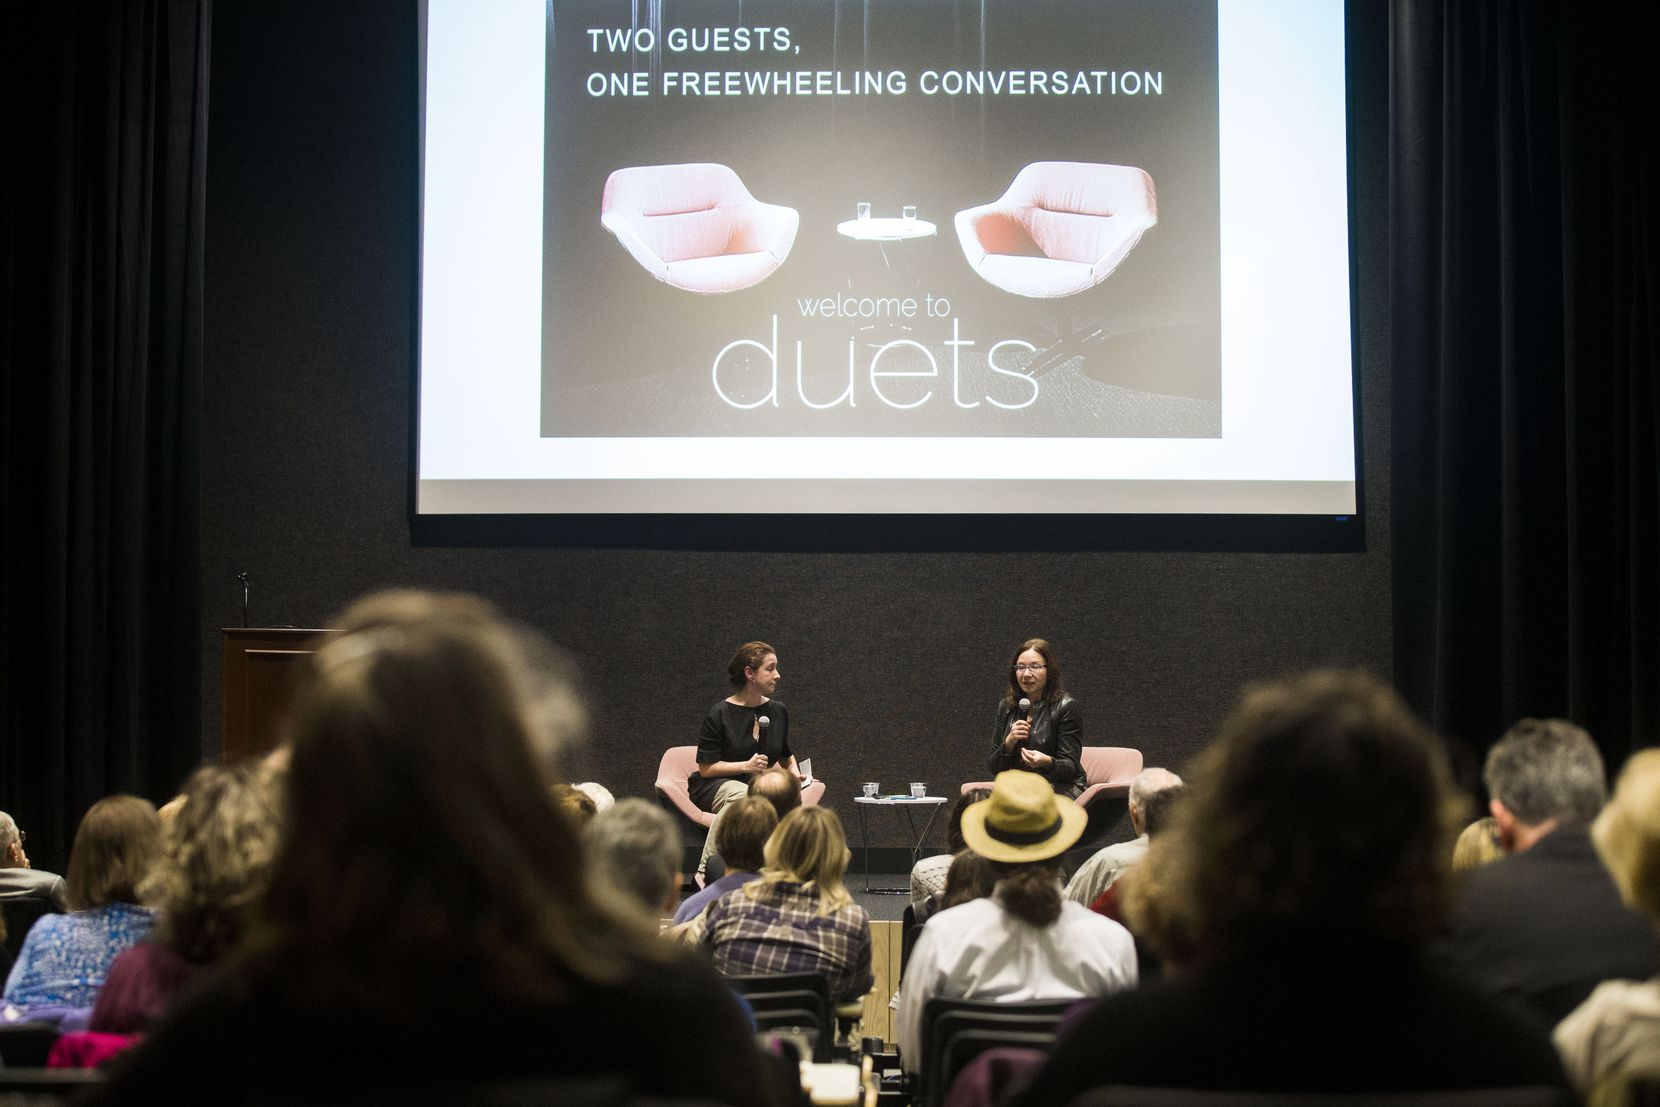 Anna Kuchment, science reporter at The Dallas Morning News, left, listens to Katharine Hayhoe, climate scientist at Texas Tech University talk during Duets Conversation Series at DMN in Dallas on Oct. 17, 2018. (Carly Geraci/The Dallas Morning News)